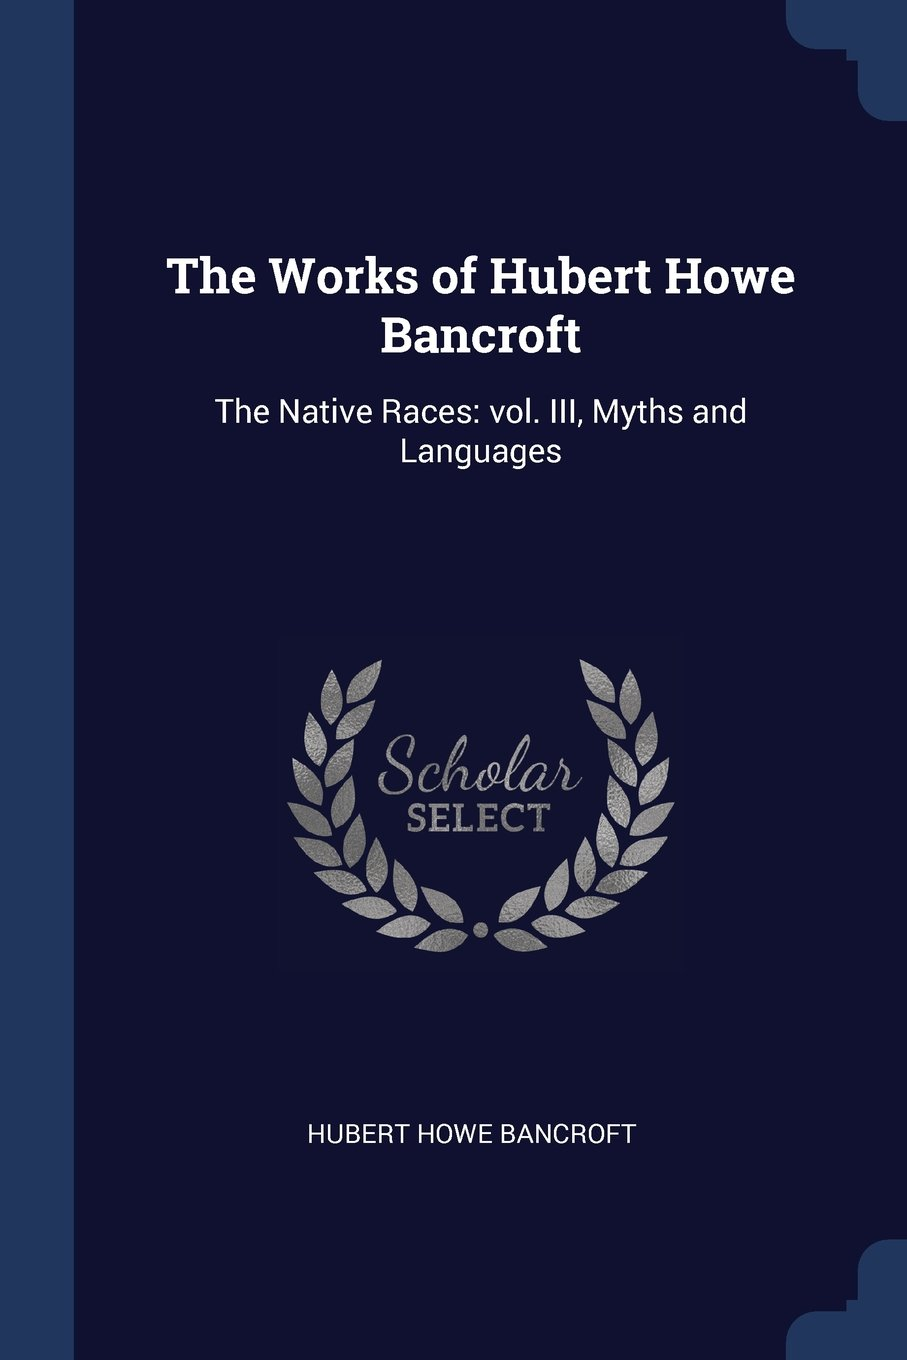 Download The Works of Hubert Howe Bancroft: The Native Races: vol. III, Myths and Languages ebook